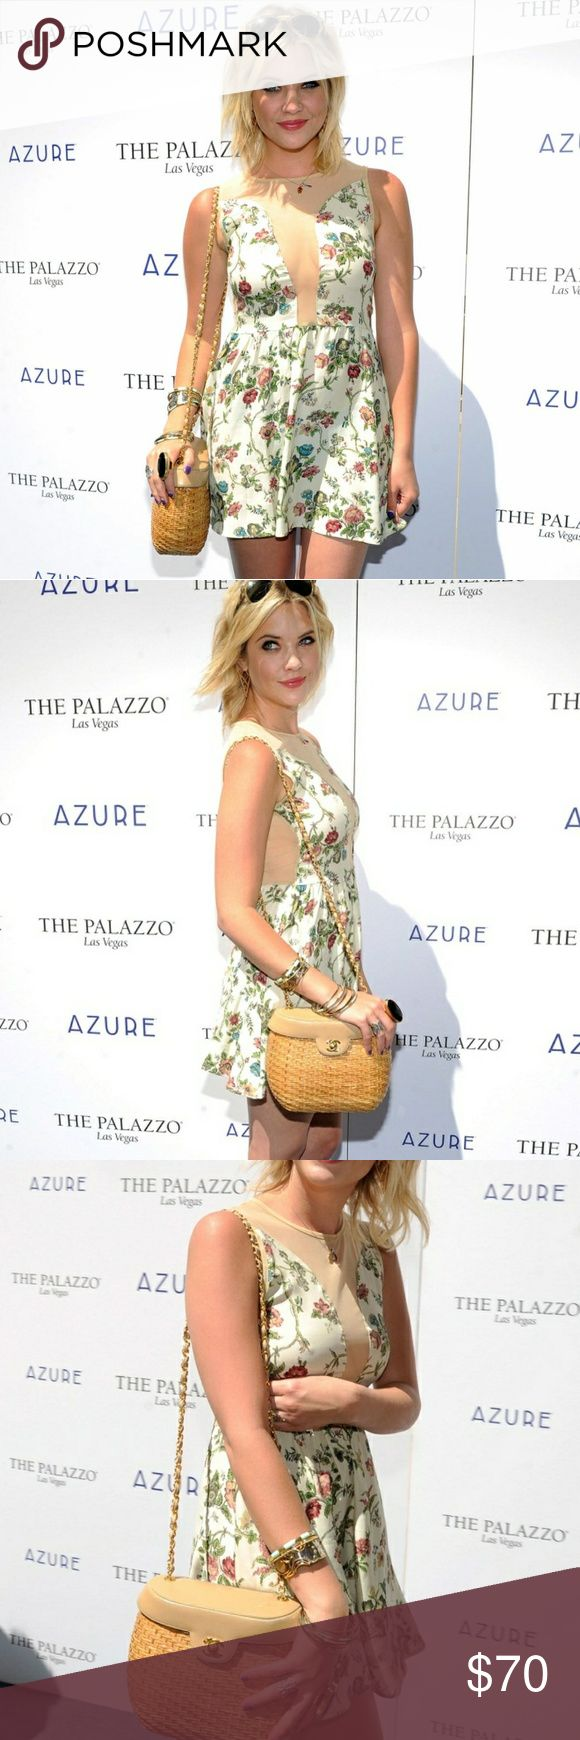 For Love and Lemons Lulu dress in Floral Ashley Benson of 'Pretty Little Liars' rocked this dress for a Vegas pool party!   EXCELLENT CONDITION. Brand new, never worn. No tags unfortunately.  The Lulu Dress by For Love & Lemons features a high neck, sleeveless design, plunging neckline with sheer overlay, sheer detailing in the back, gathered waist, and zip closure down the back.  Made In USA  If you love FL&L check out my closet for other dresses and tops! For Love And Lemons Dresses Mini